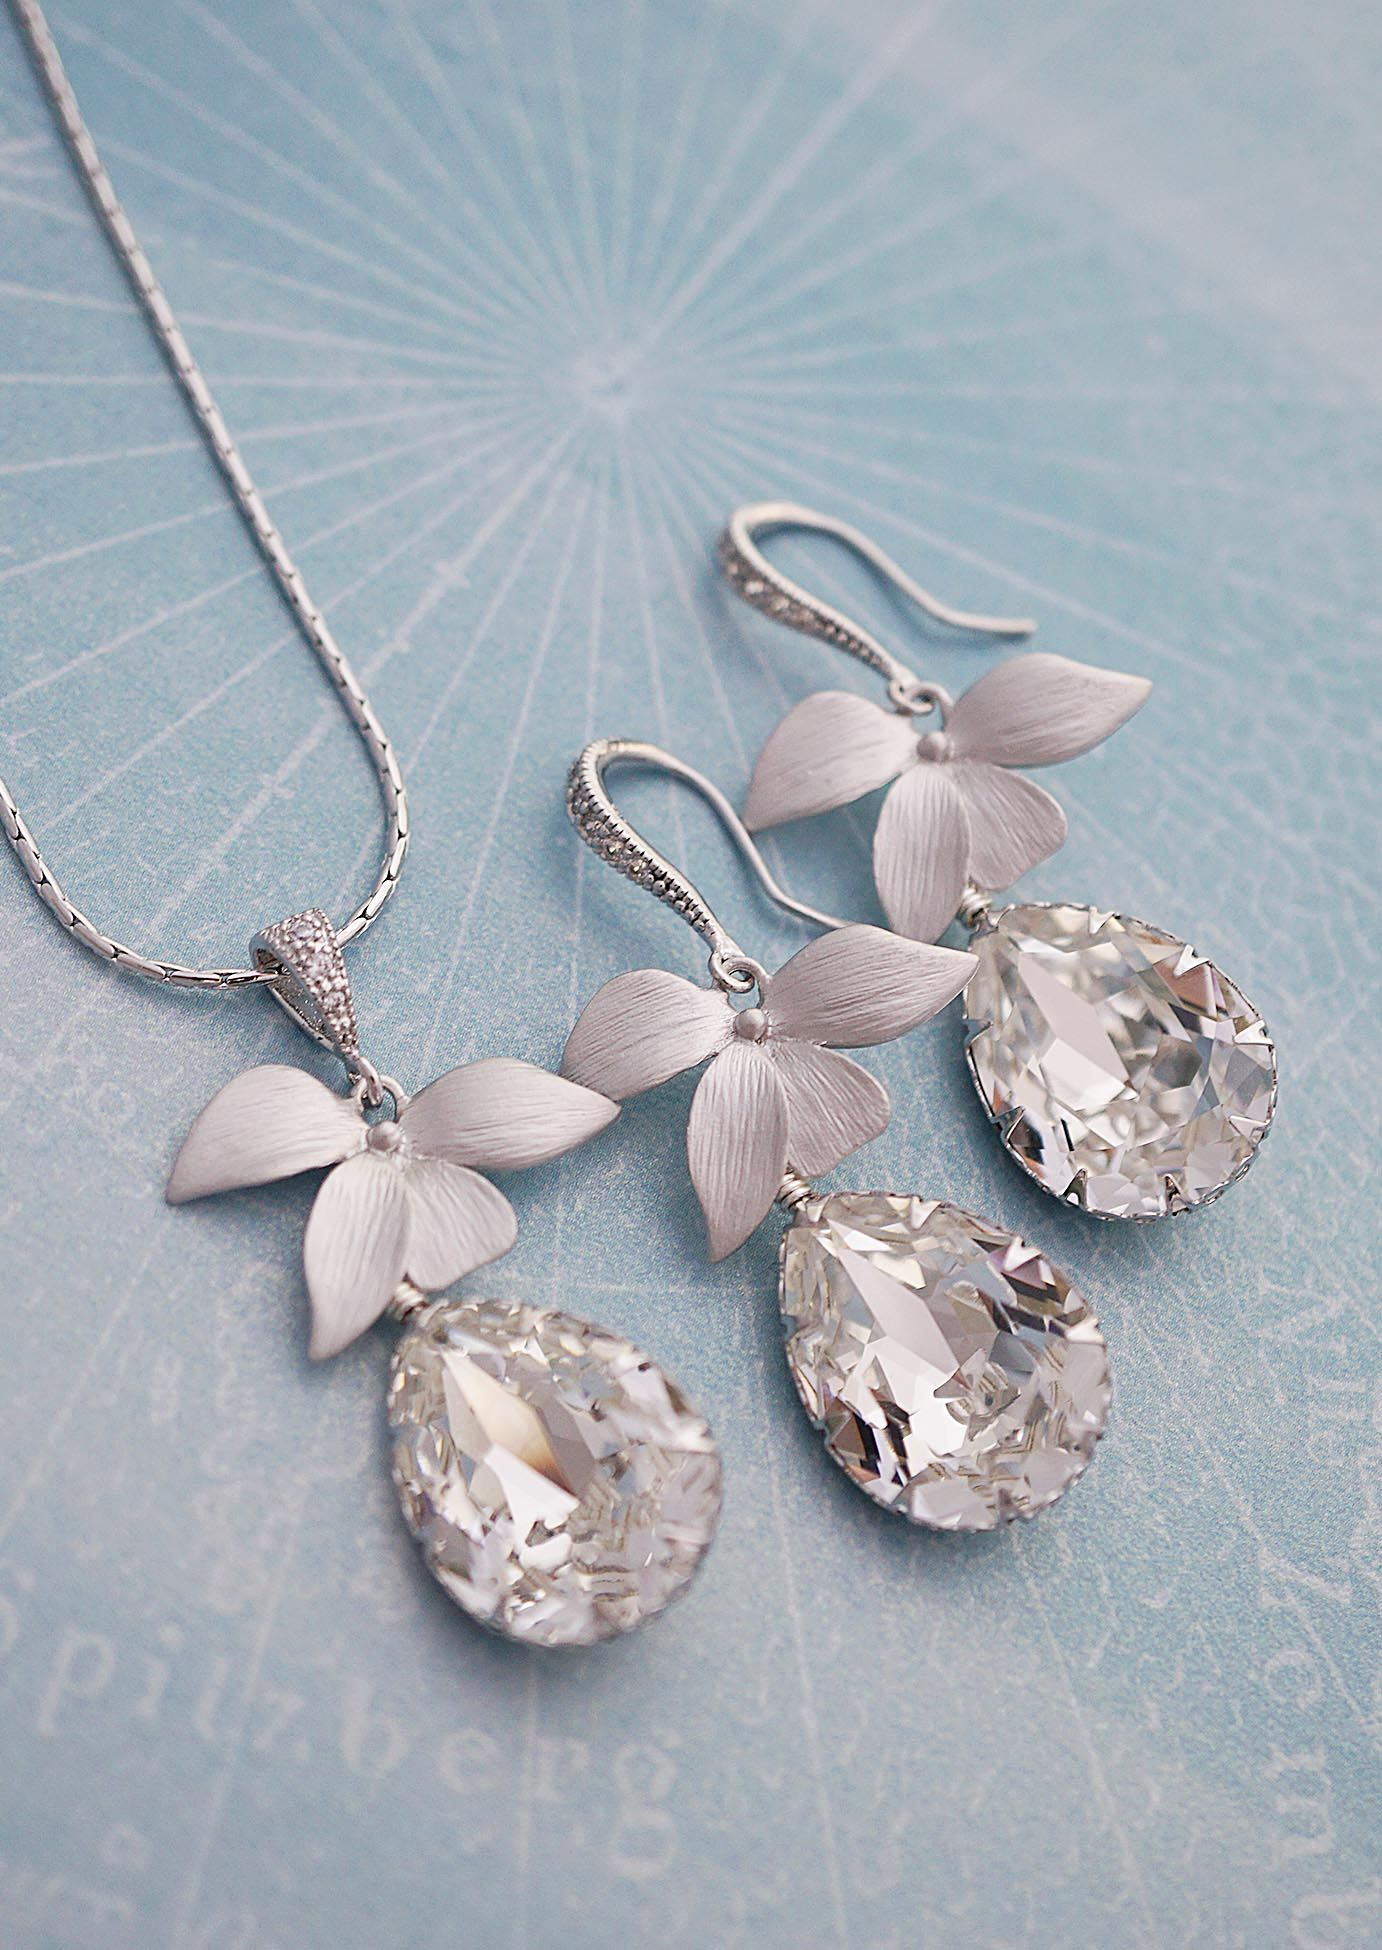 1faed9559 ... Earrings Nation. Elegant Floral Bridal Jewelry Set with Swarovski  Crystals from EarringsNation Garden wedding beach wedding floral bridal